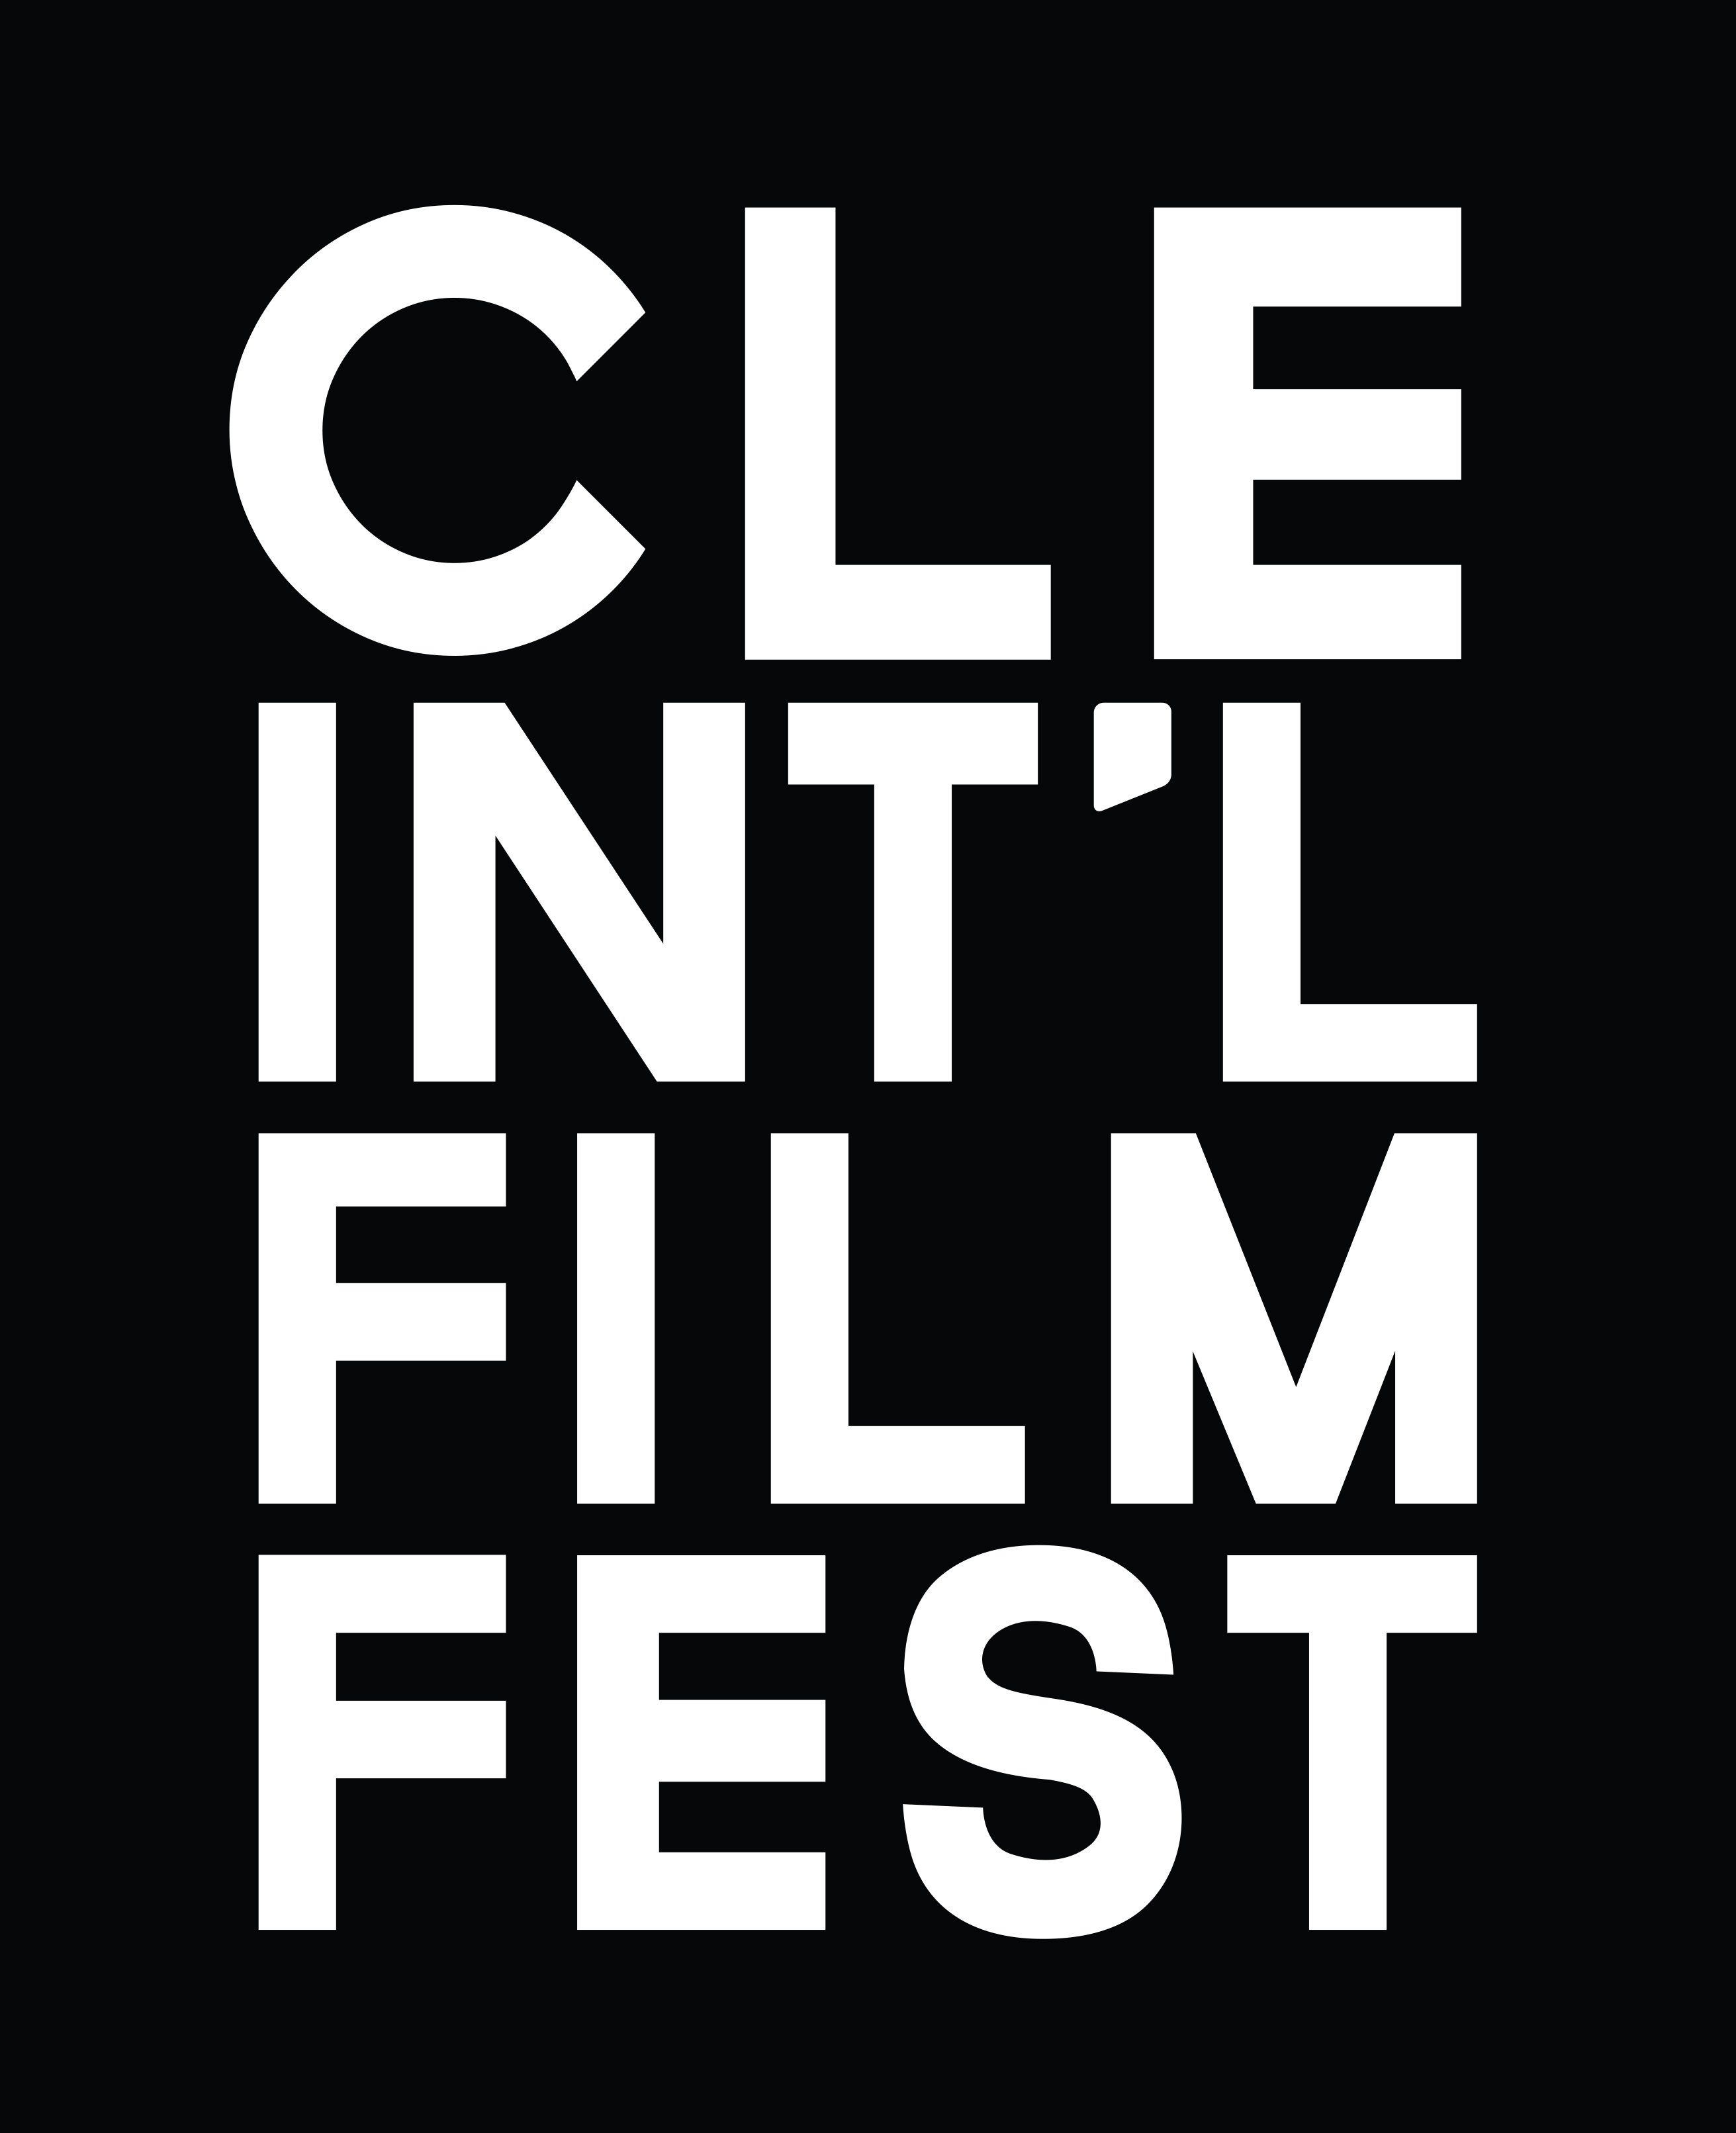 http://legacy.clevelandfilm.org/assets/images/downloads/ciff_logos/CLE_INTL_FILM_FEST.jpg